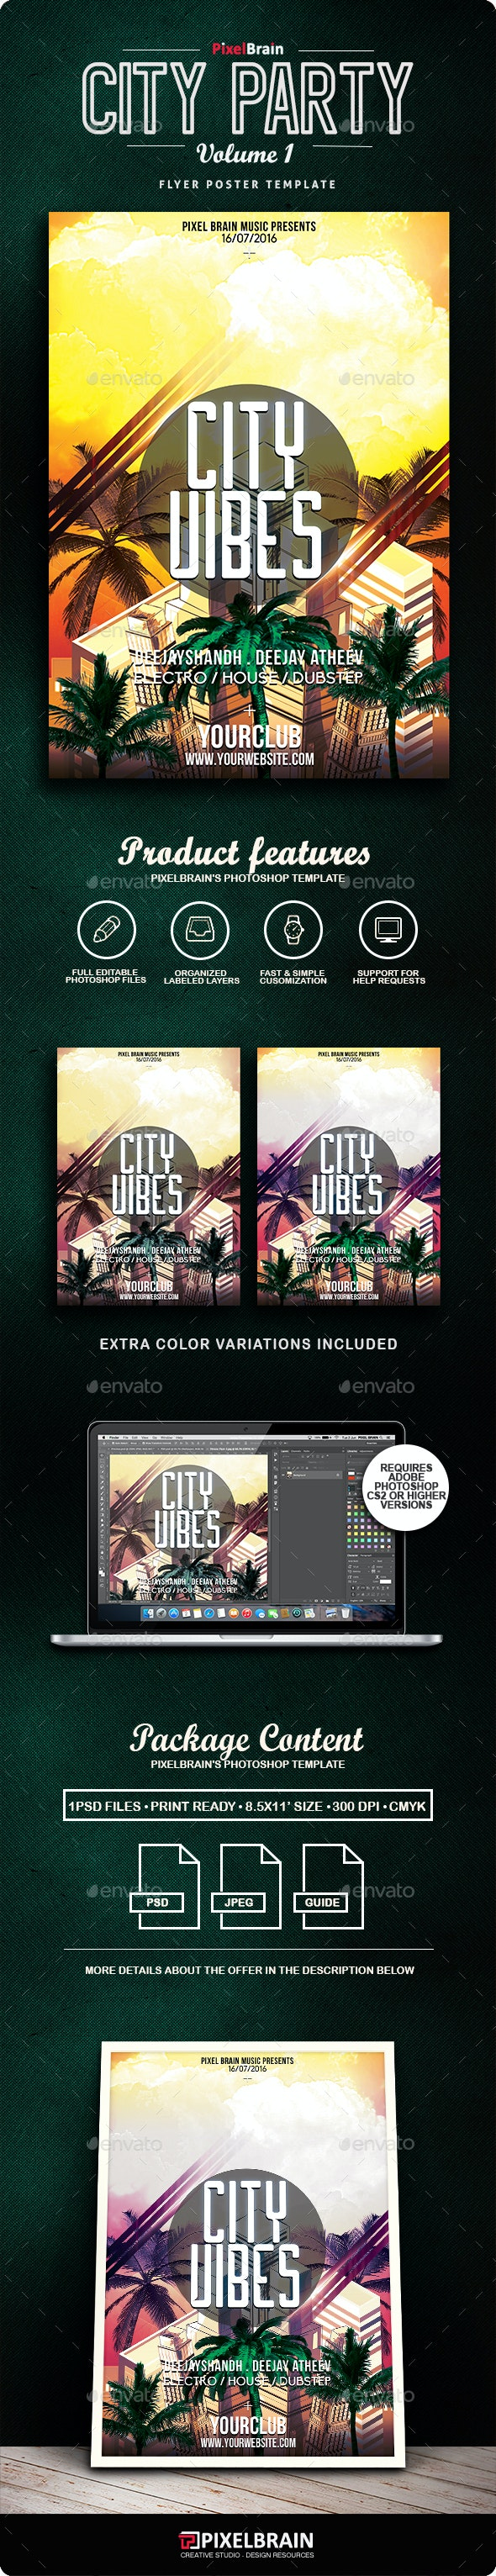 City Party Flyer/Poster Vol. 1 - Clubs & Parties Events